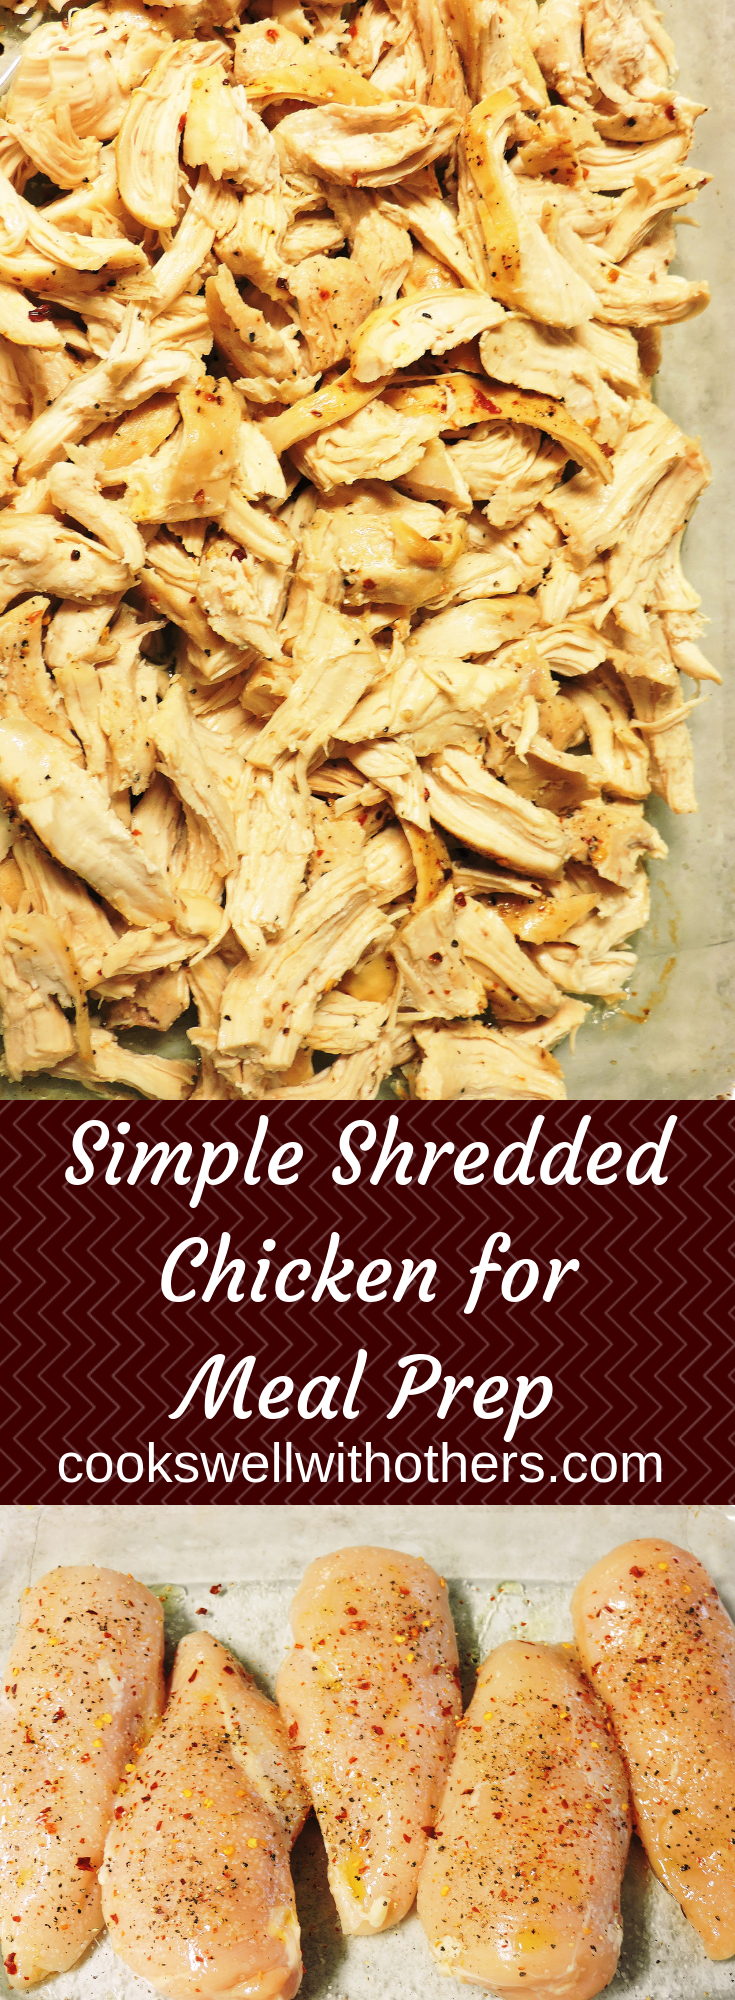 Simple Shredded Chicken for Meal Prep images